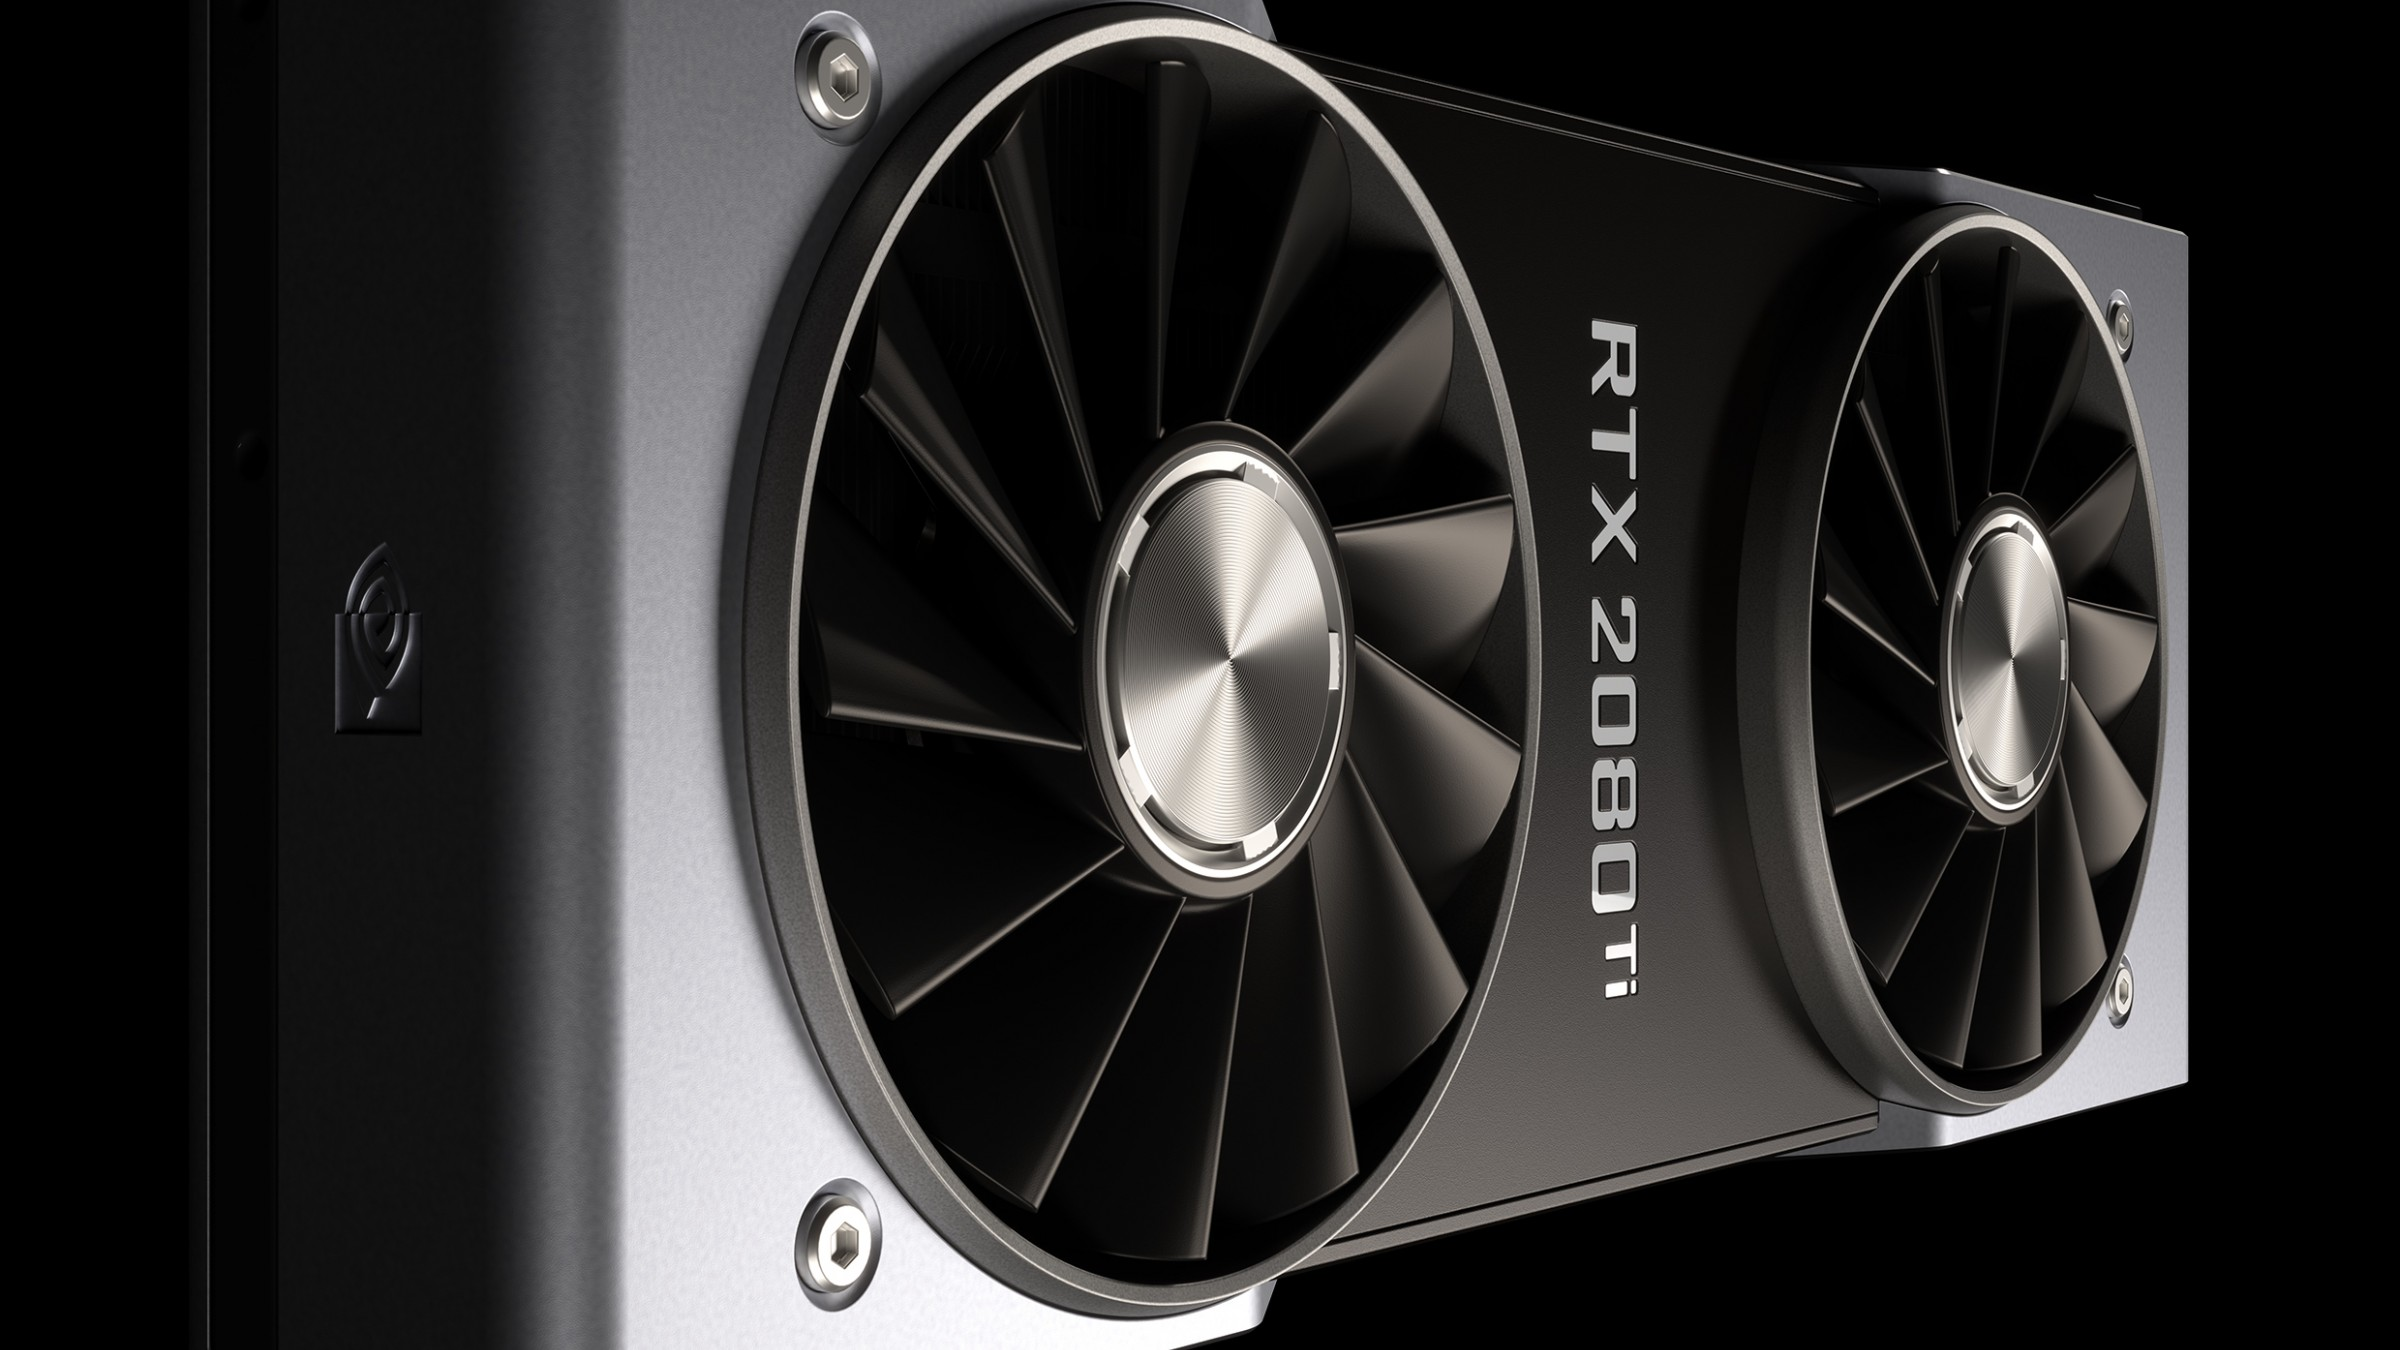 NVIDIA Announces New 2080 Cards with Links and 8K Playback